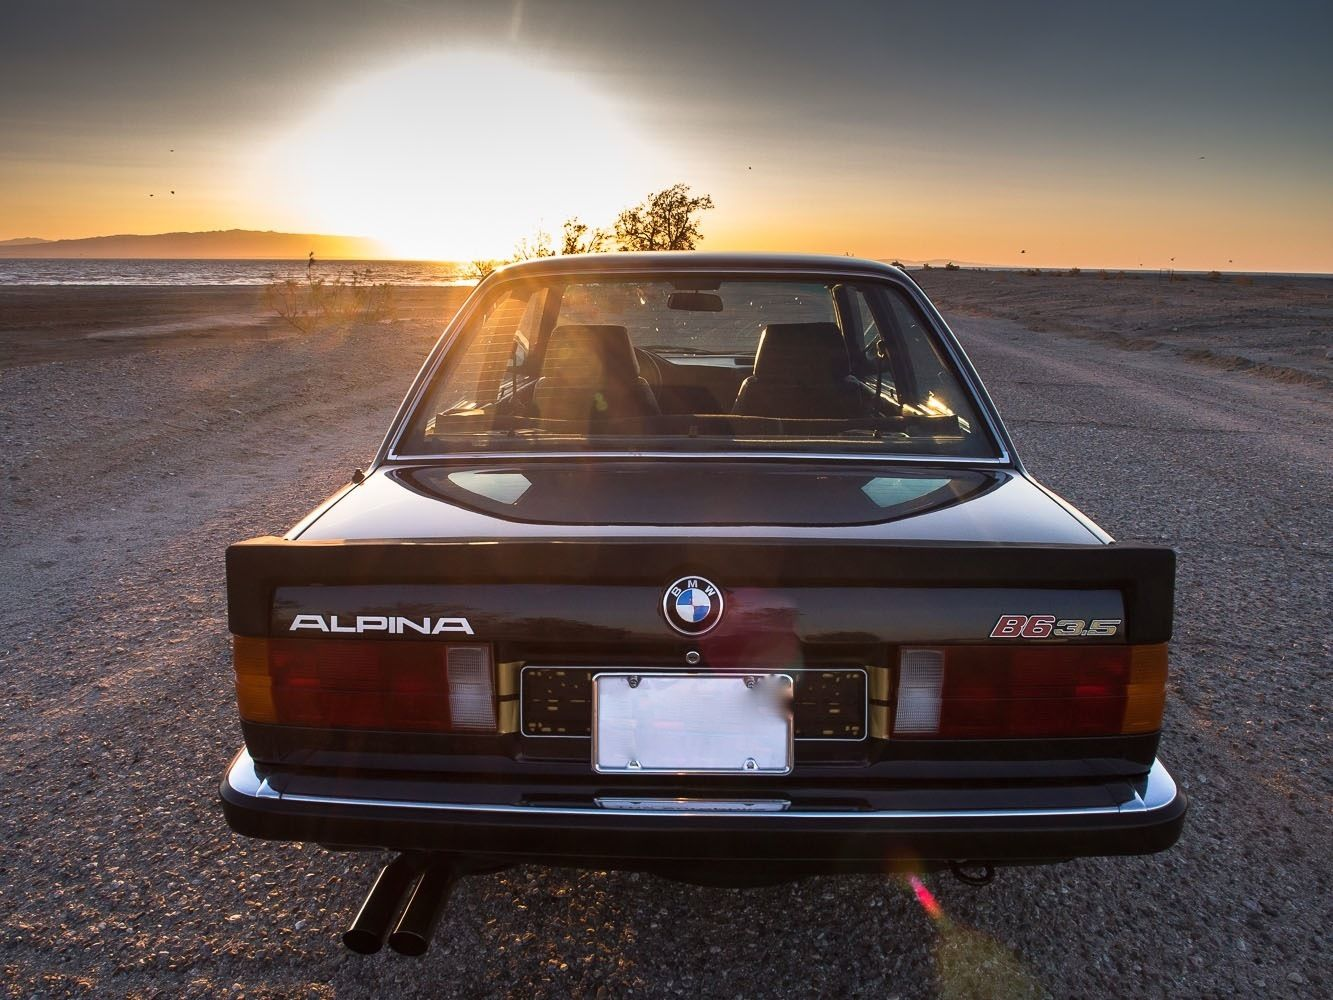 1986 Alpina B6 3 5 Based On The Bmw E30 For How Much On Ebay